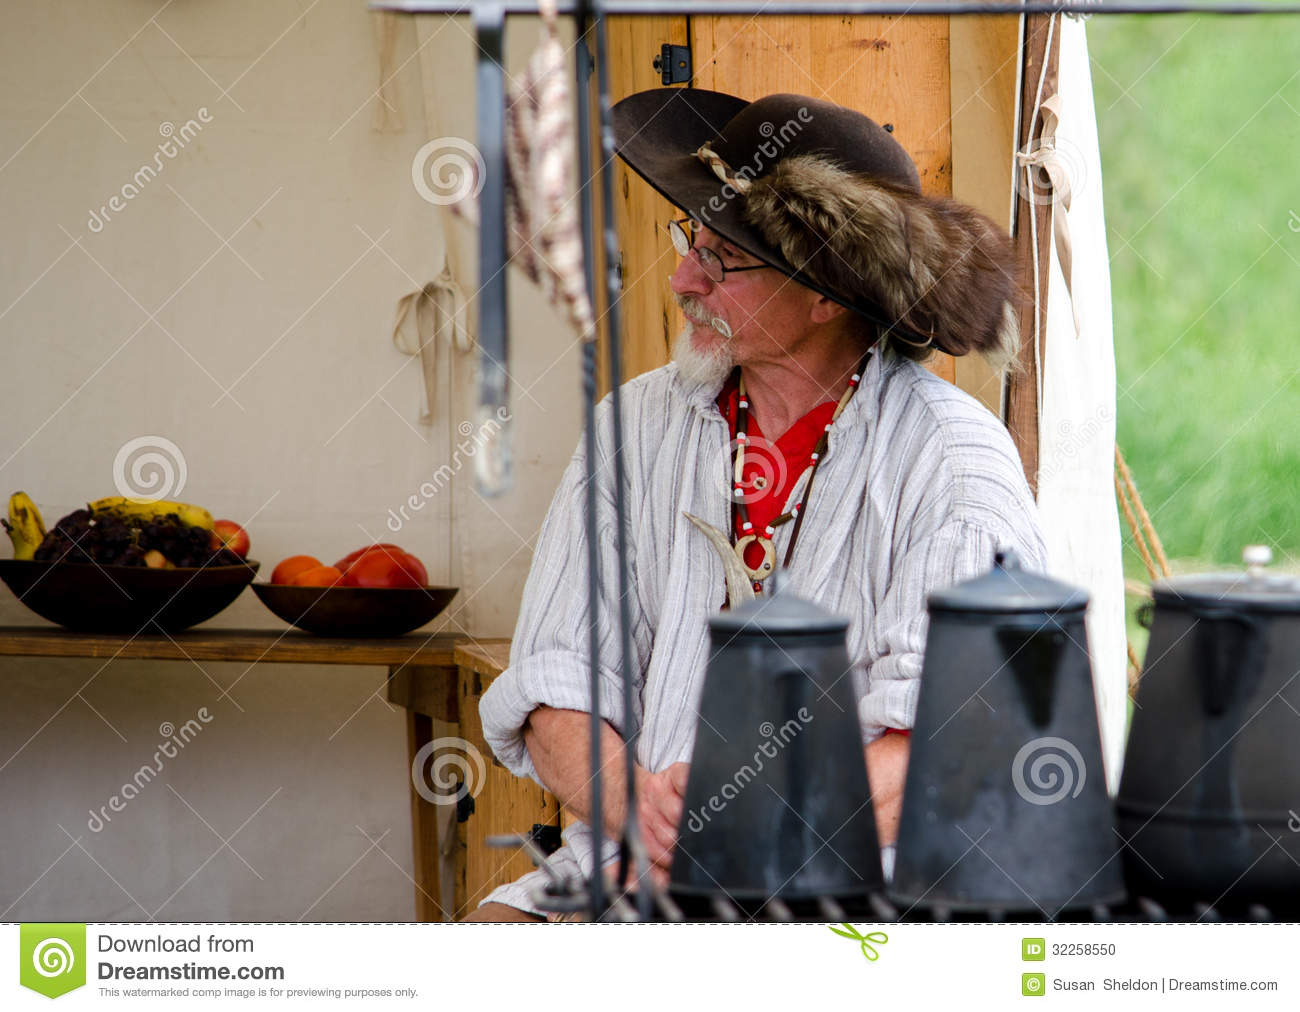 life of a merchant in 1700s During the 1700s, the average life expectancy in the south was 10 to 30 years lower than other english colonies due to disease and malnutrition this had a dramatic effect on the development of.